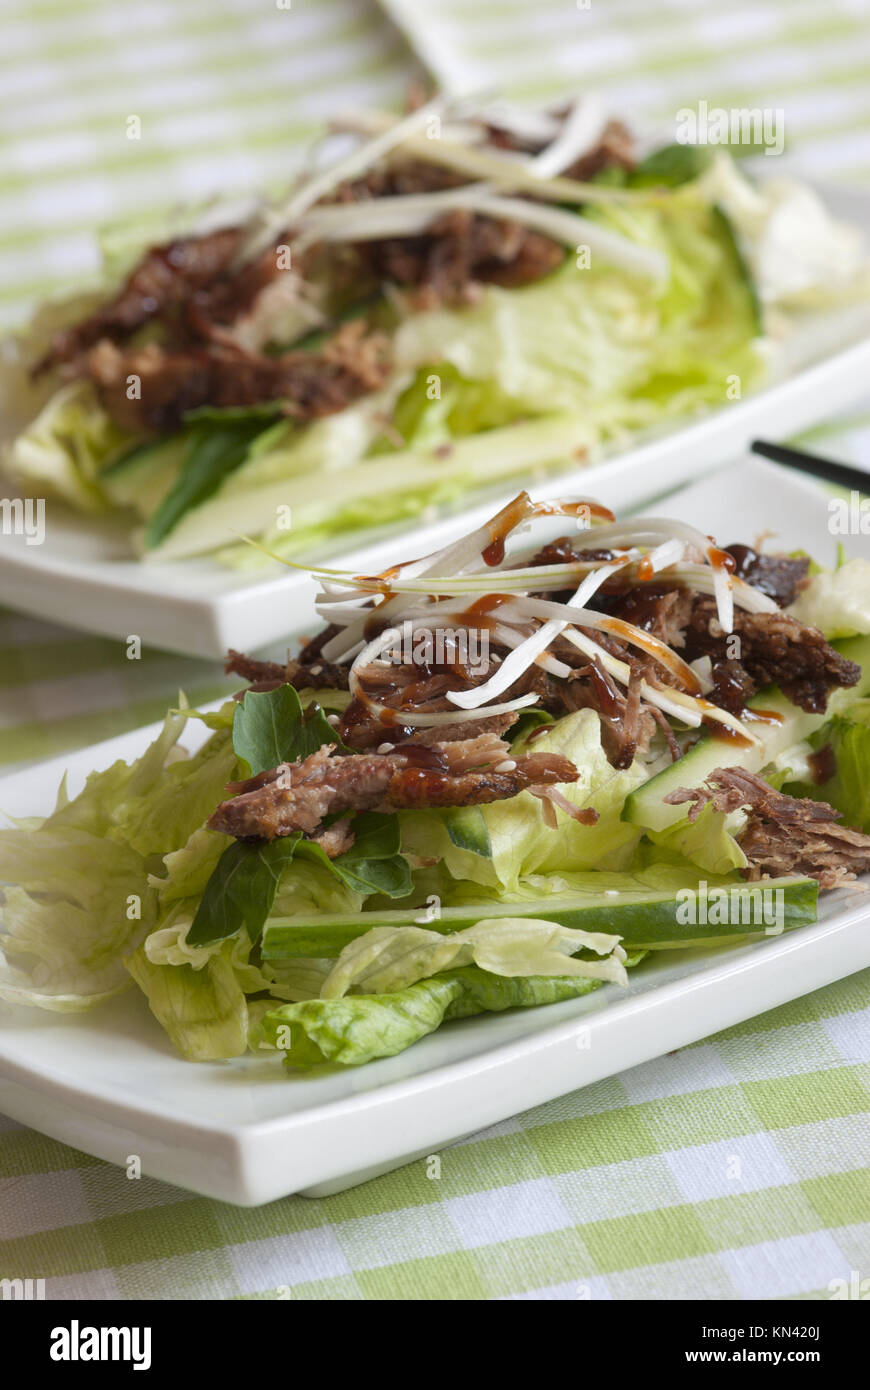 Crispy duck in hoisin sauce with lettuce and cucumber. - Stock Image